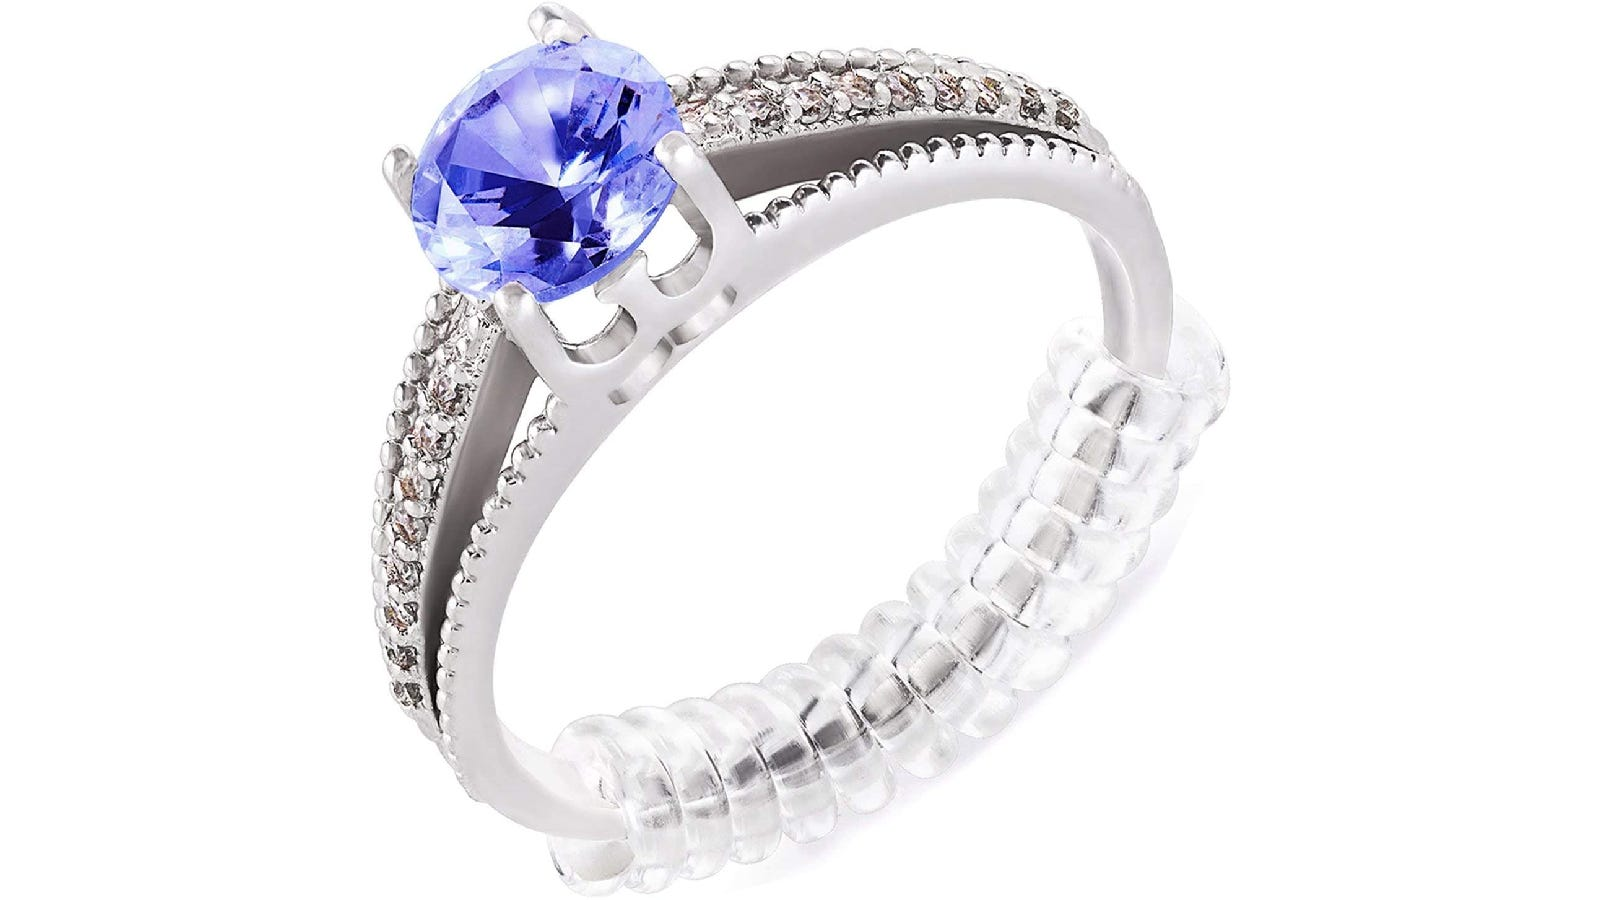 A silver ring that is fitted with a purple gem and a clear band size adjuster.